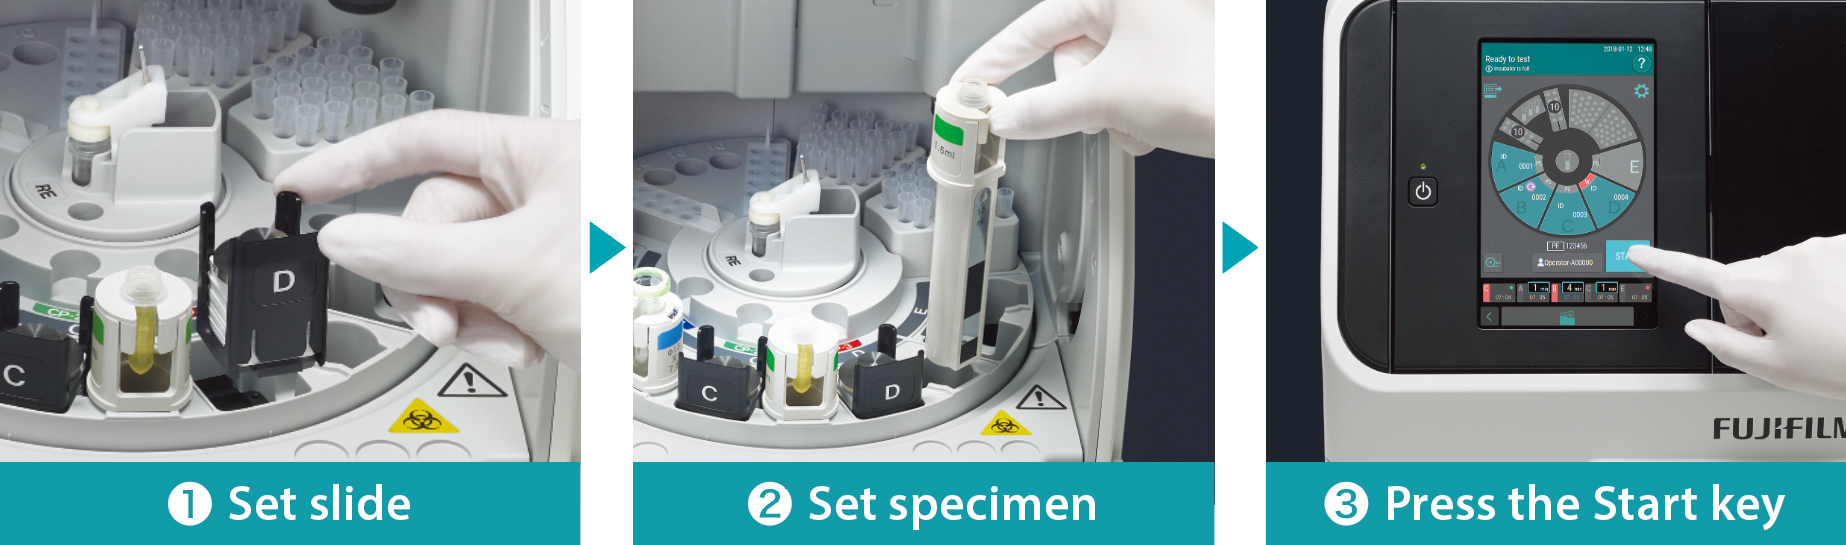 [photo] Gloved hand placing slide and specimen on internal tray inside incubator and then pressing start on external display/screen with machine lid closed